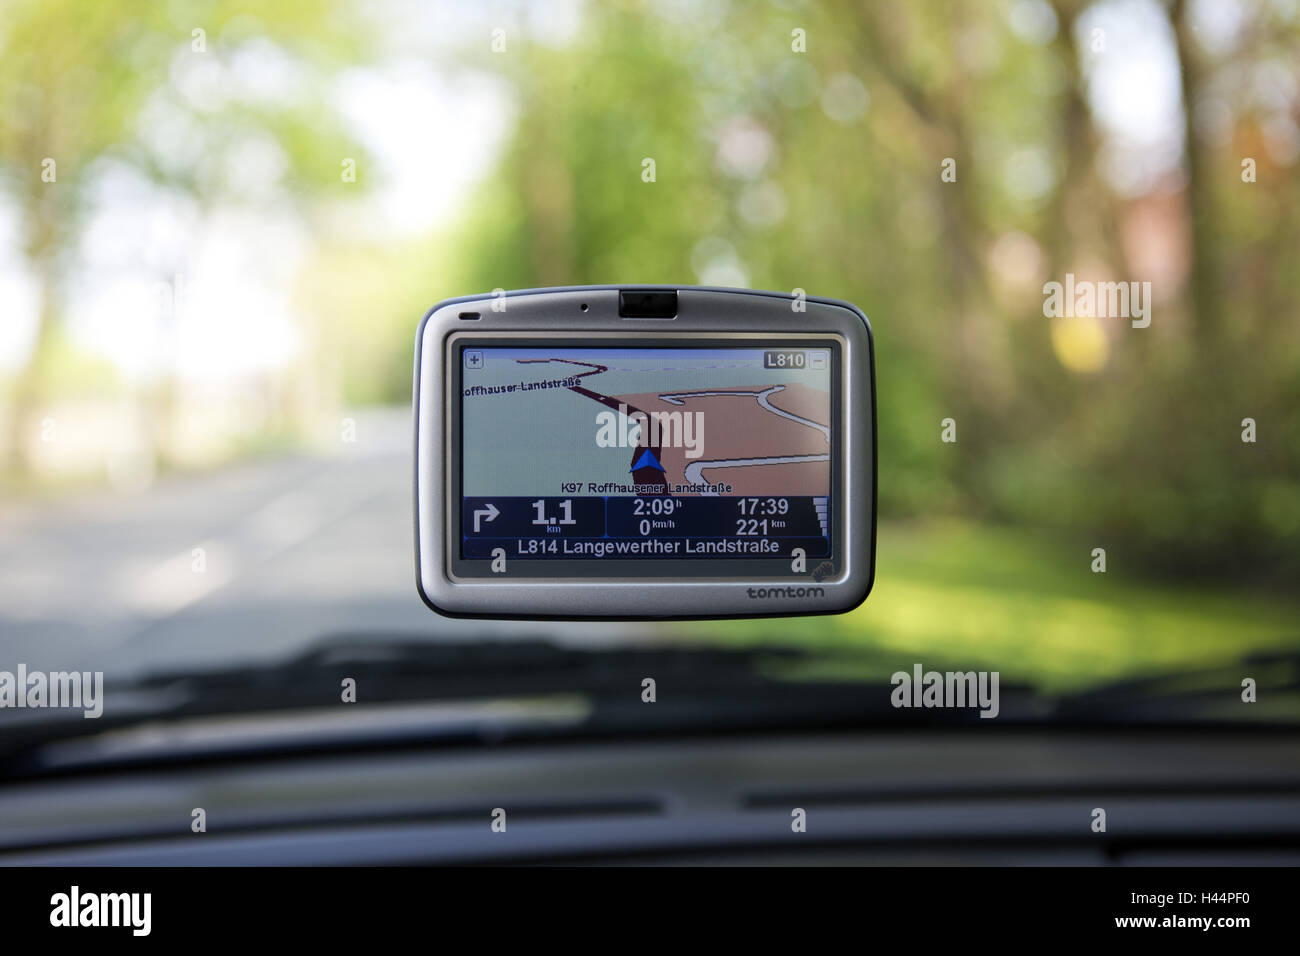 Navigation system in the car, Stock Photo